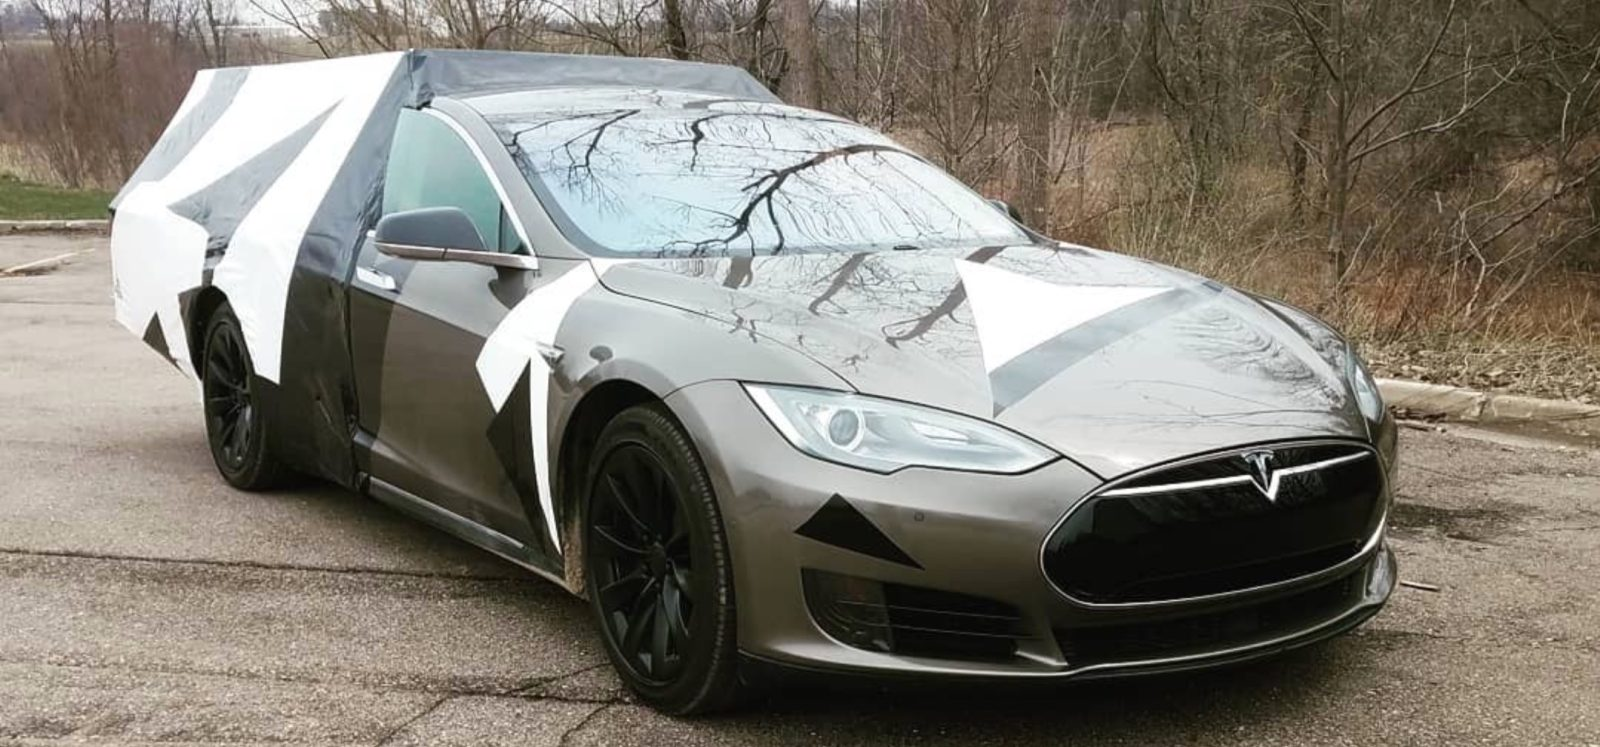 Tesla Model S-based electric motorhome unveiled – disappointment?